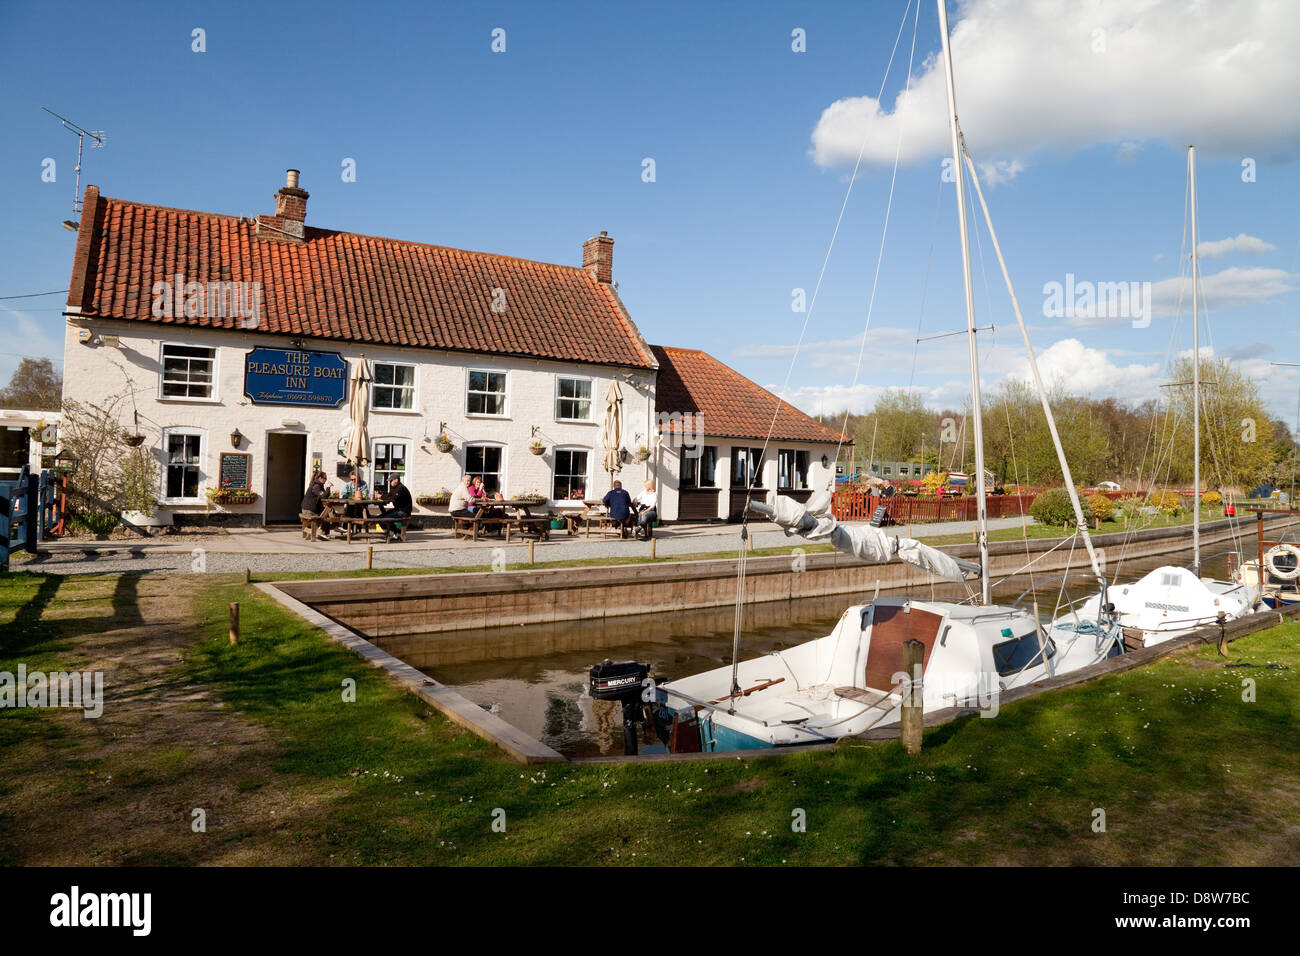 The Pleasure Boat Inn, Hickling Broad, an example of a Norfolk Broads pub, Norfolk, England UK - Stock Image